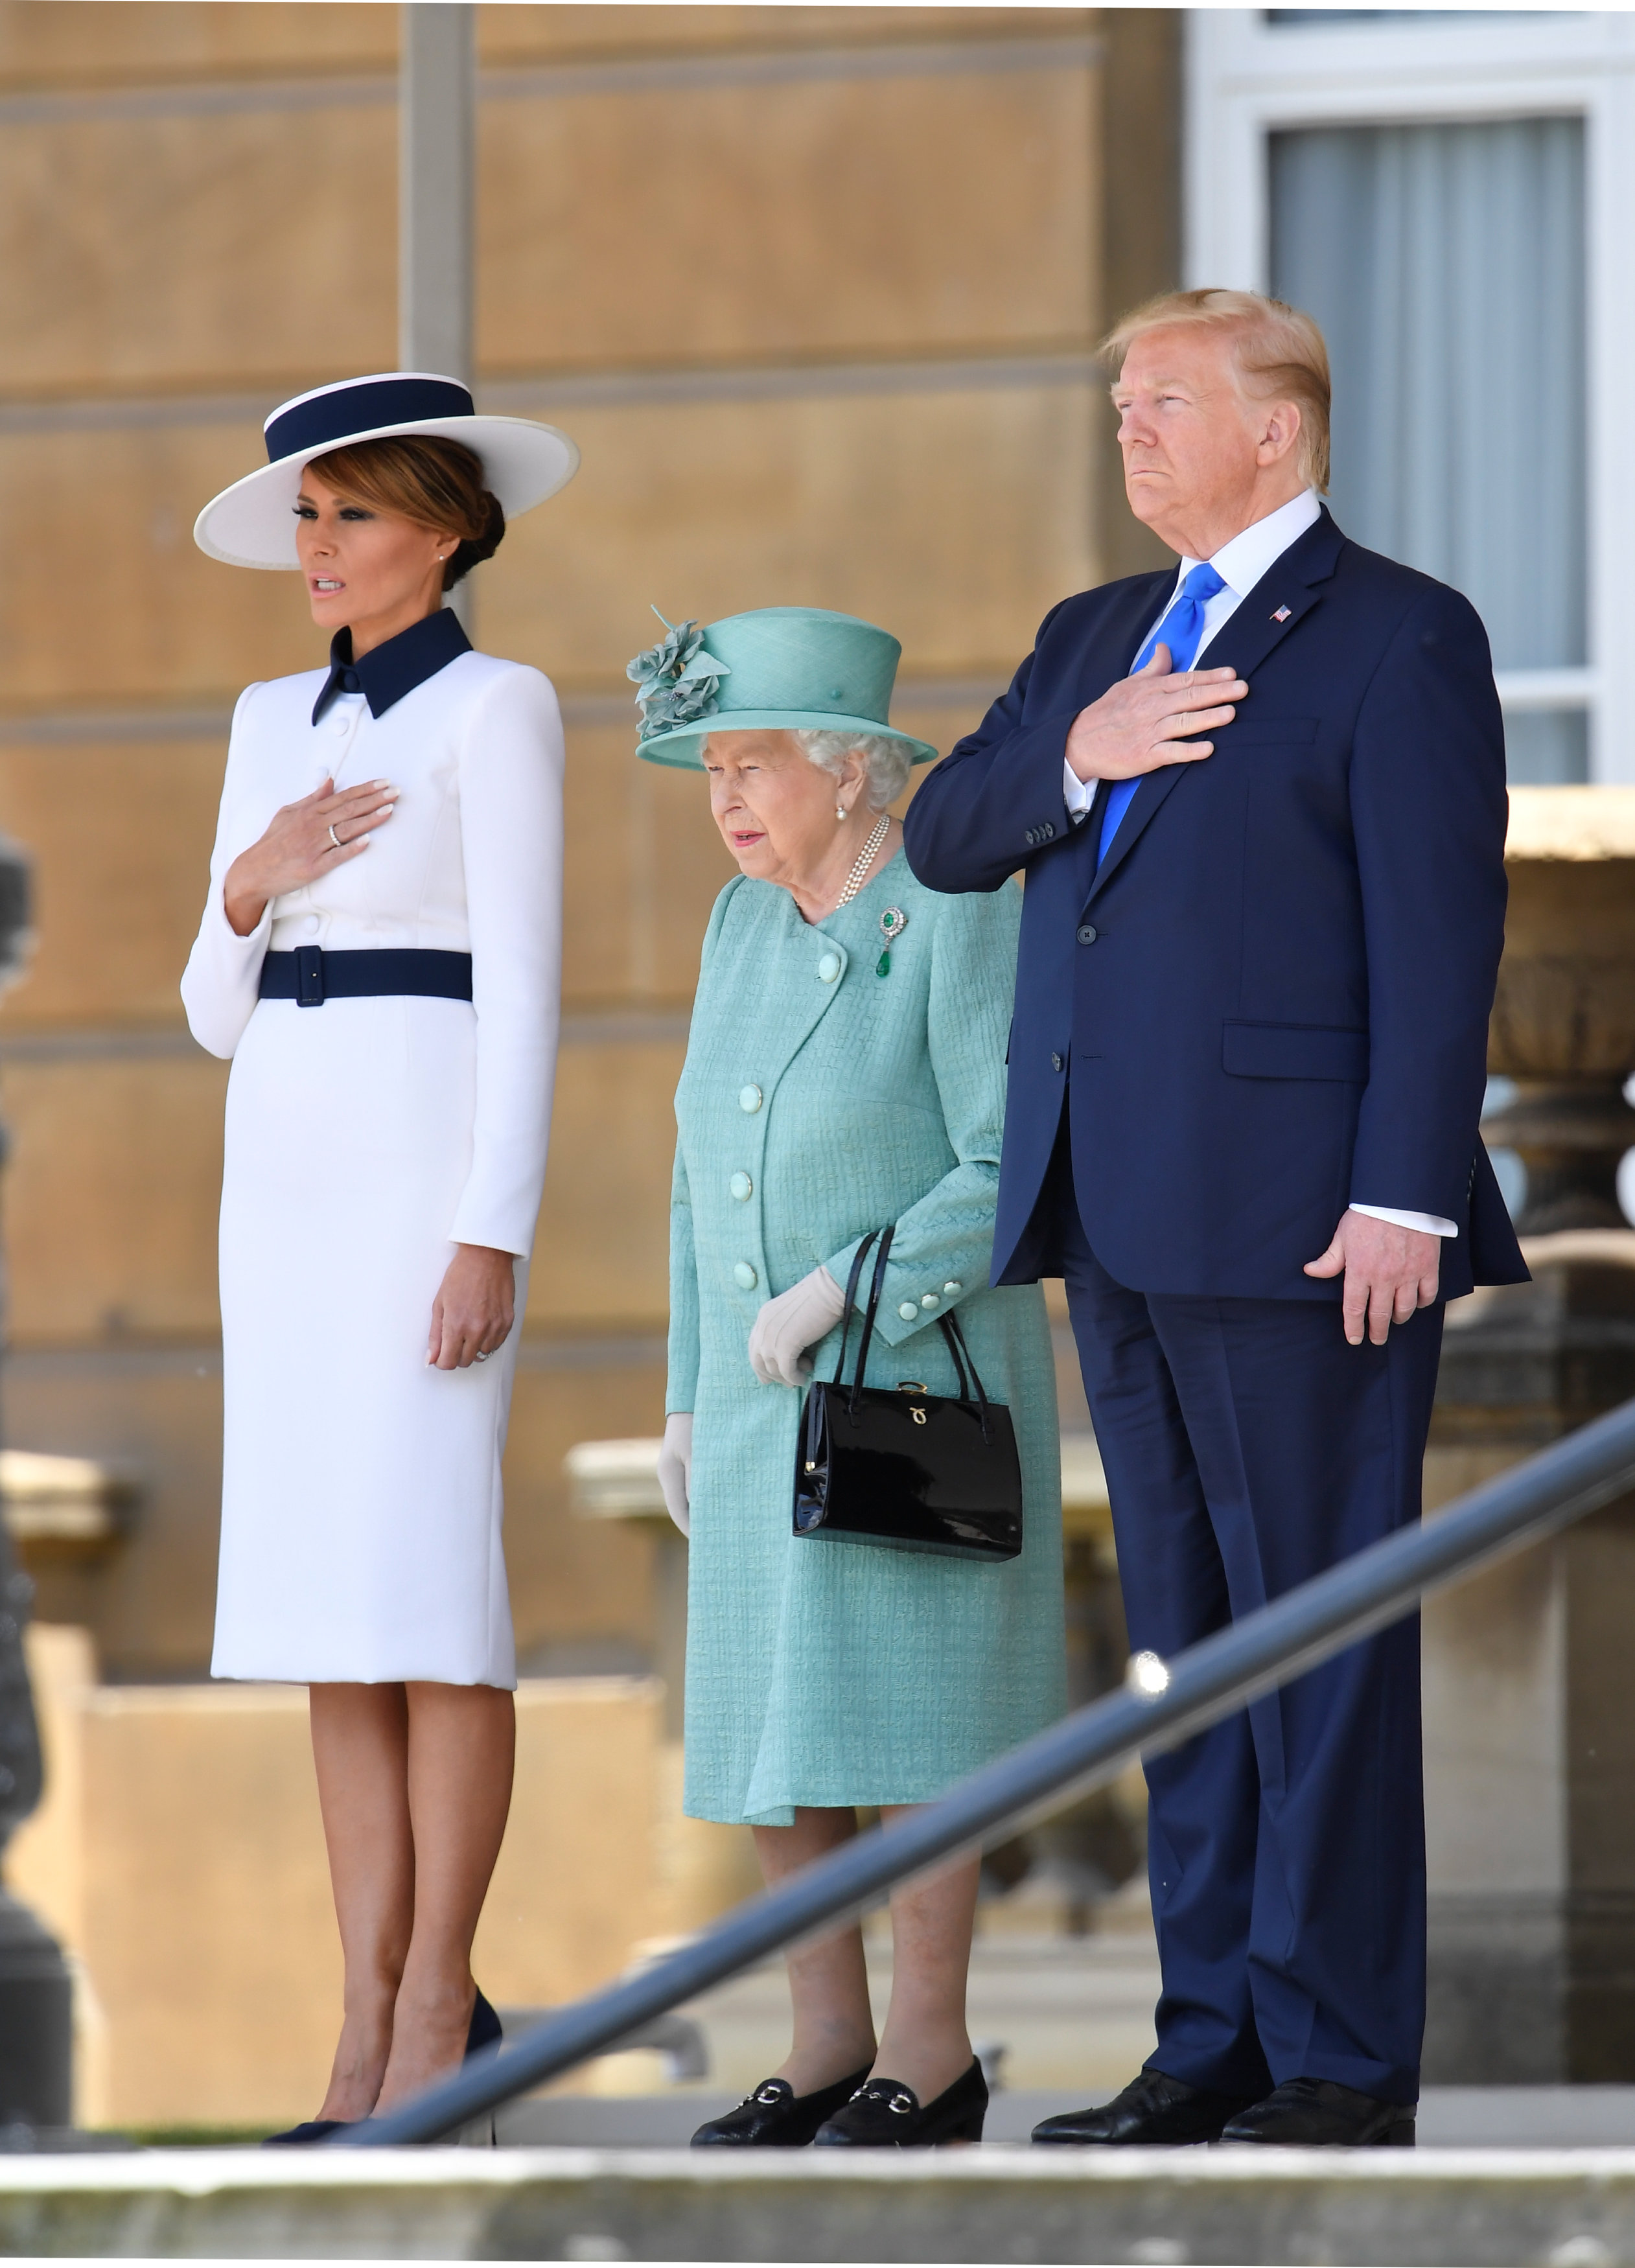 Britain's Queen Elizabeth II (C) stands with US President Donald Trump (R) and US First Lady Melania Trump (L) as they listen to the US national anthem during a welcome ceremony at Buckingham Palace in central London on June 3, 2019, on the first day of the US president and First Lady's three-day State Visit to the UK. - Britain rolled out the red carpet for US President Donald Trump on June 3 as he arrived in Britain for a state visit already overshadowed by his outspoken remarks on Brexit. (Photo by TOBY MELVILLE / POOL / AFP)        (Photo credit should read TOBY MELVILLE/AFP/Getty Images)